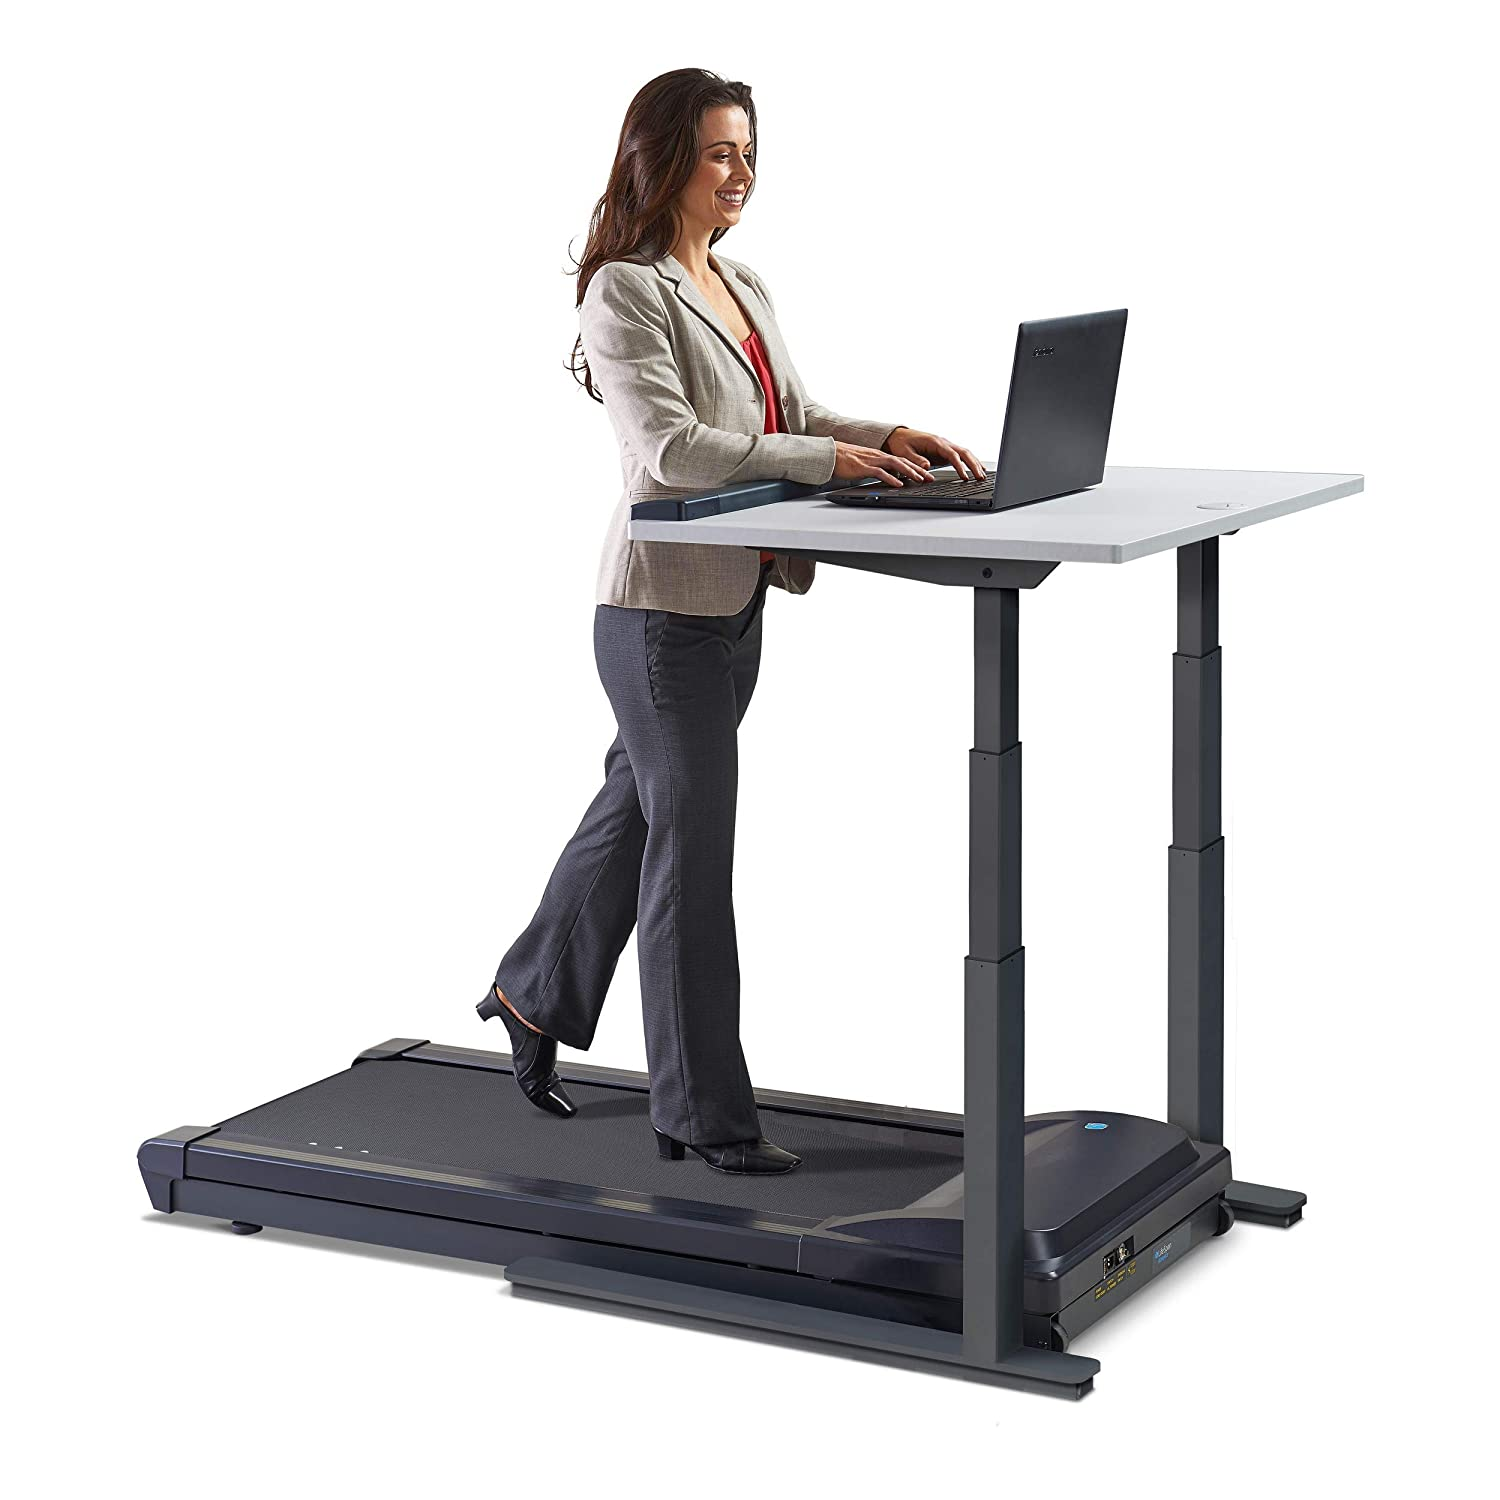 Awesome Lifespan Tr1200 Dt7 Treadmill Desk Download Free Architecture Designs Embacsunscenecom